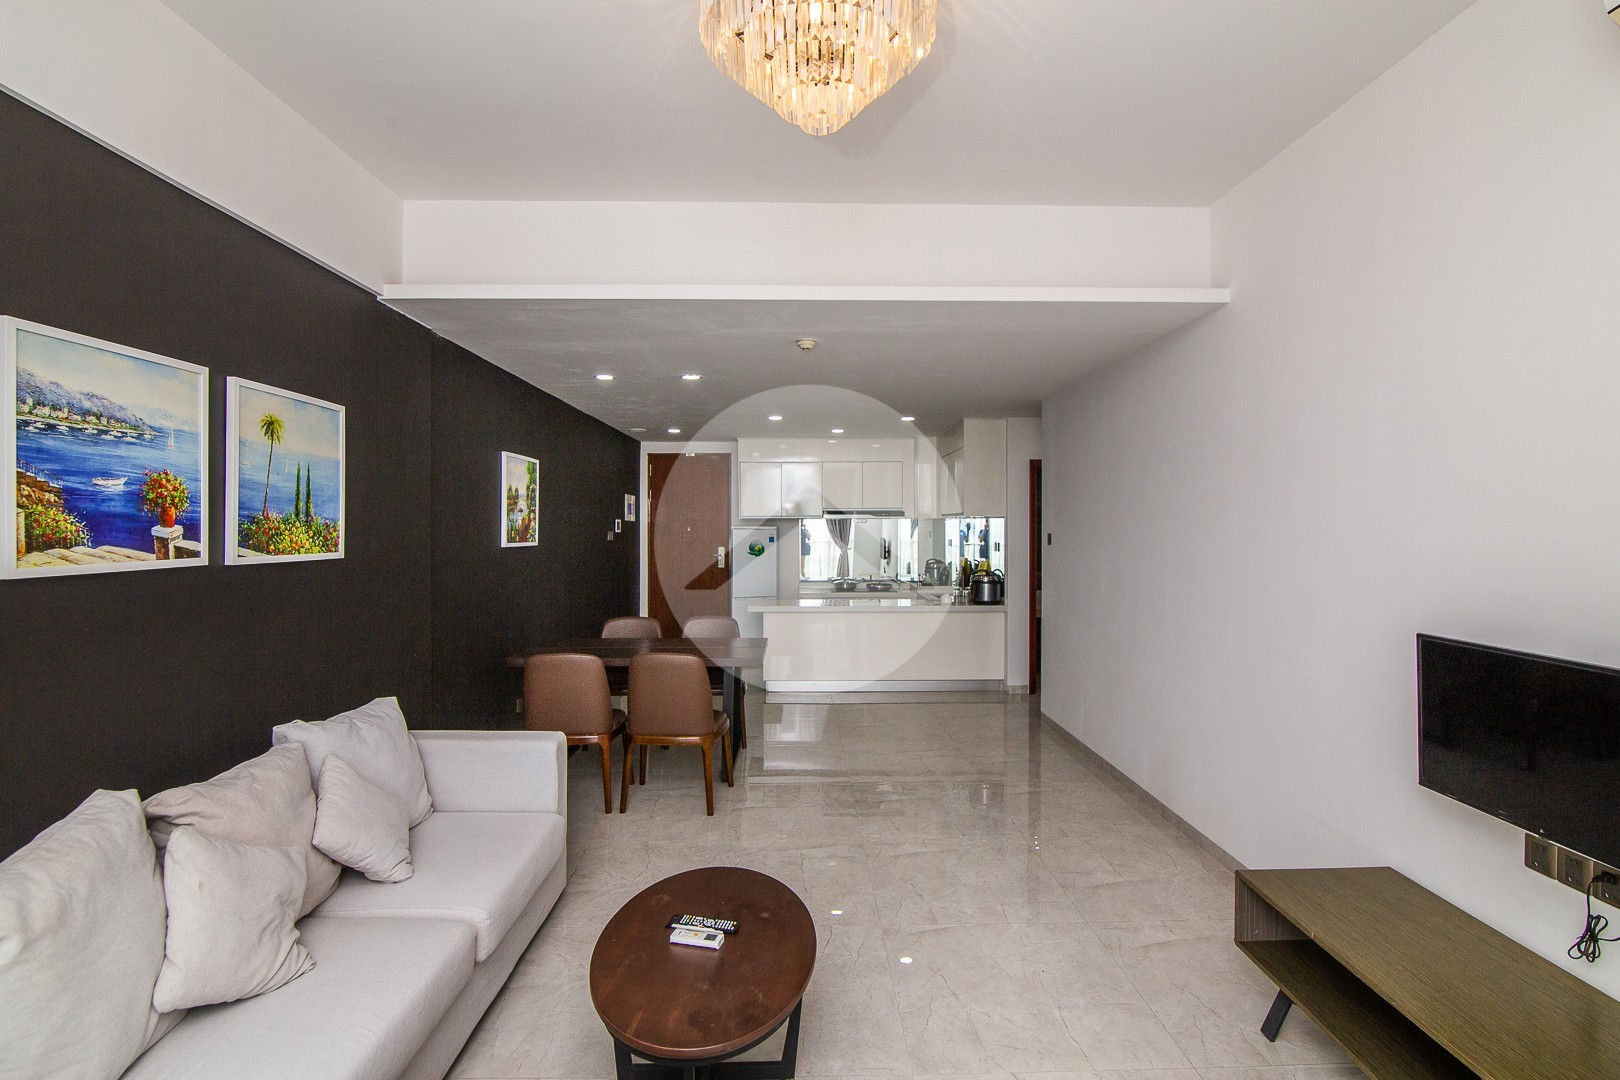 2 Bedroom Condo For Rent - East One, Phnom Penh